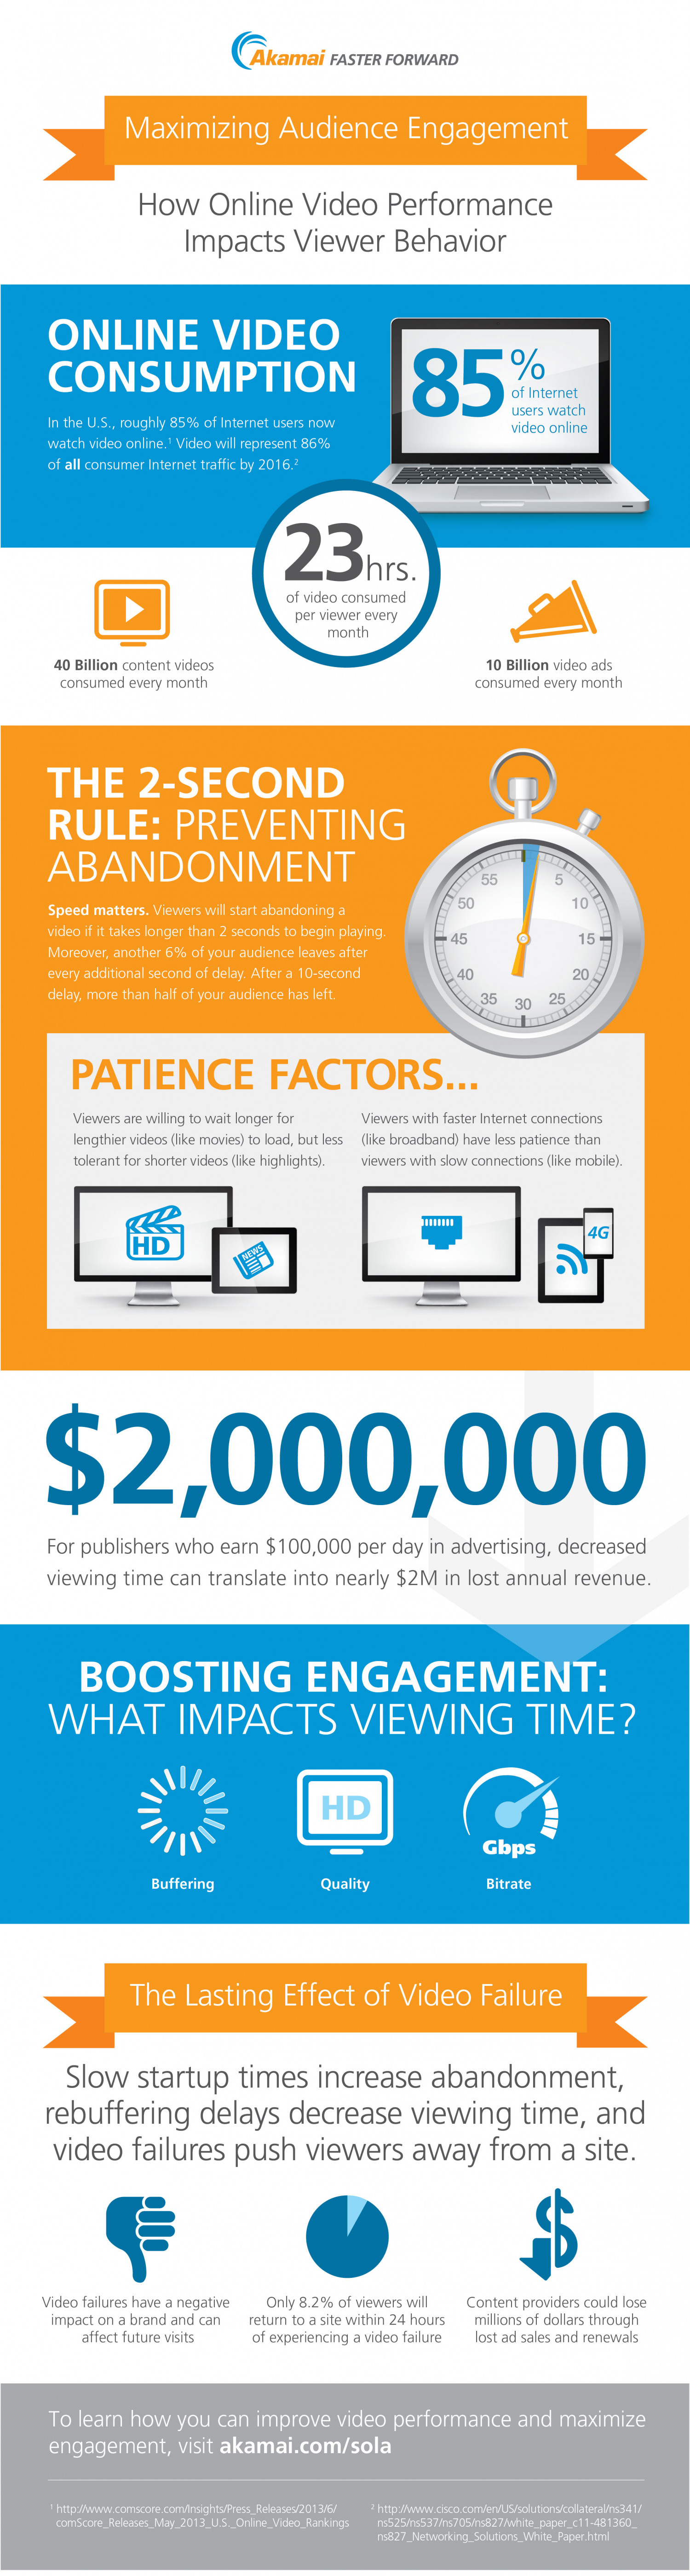 Maximizing Audience Engagement Infographic